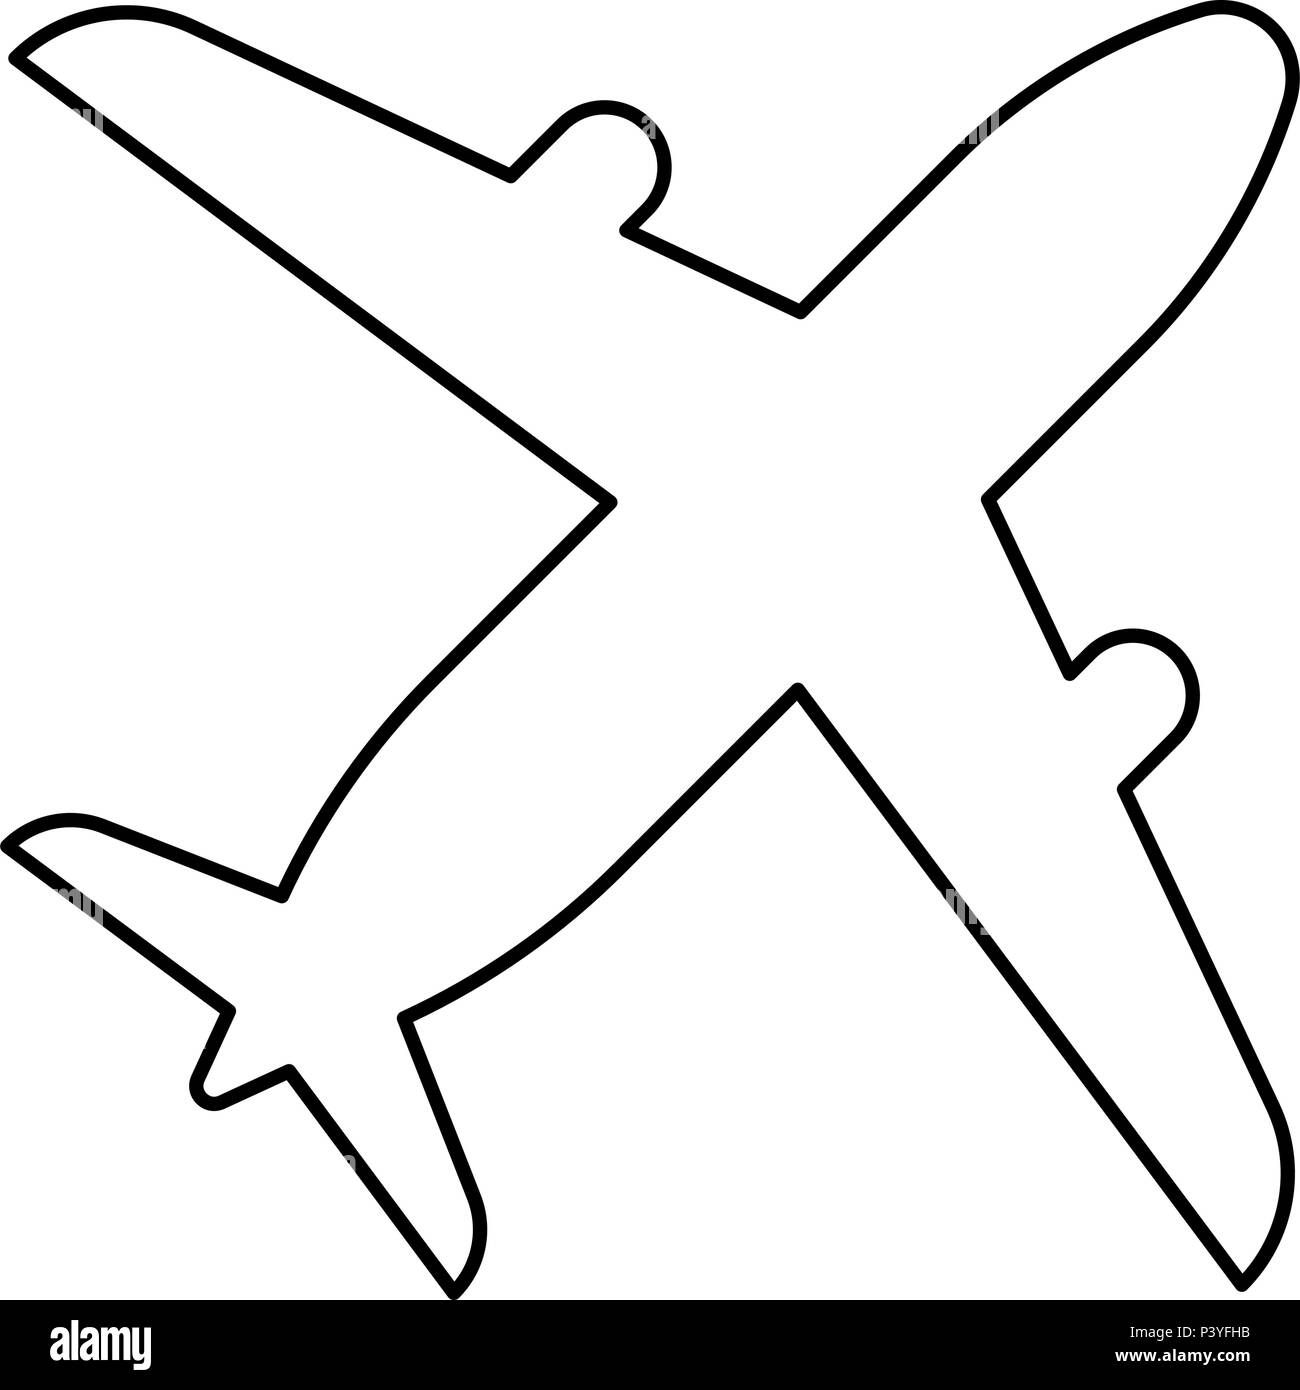 Airplane icon black color vector I flat style simple image - Stock Image